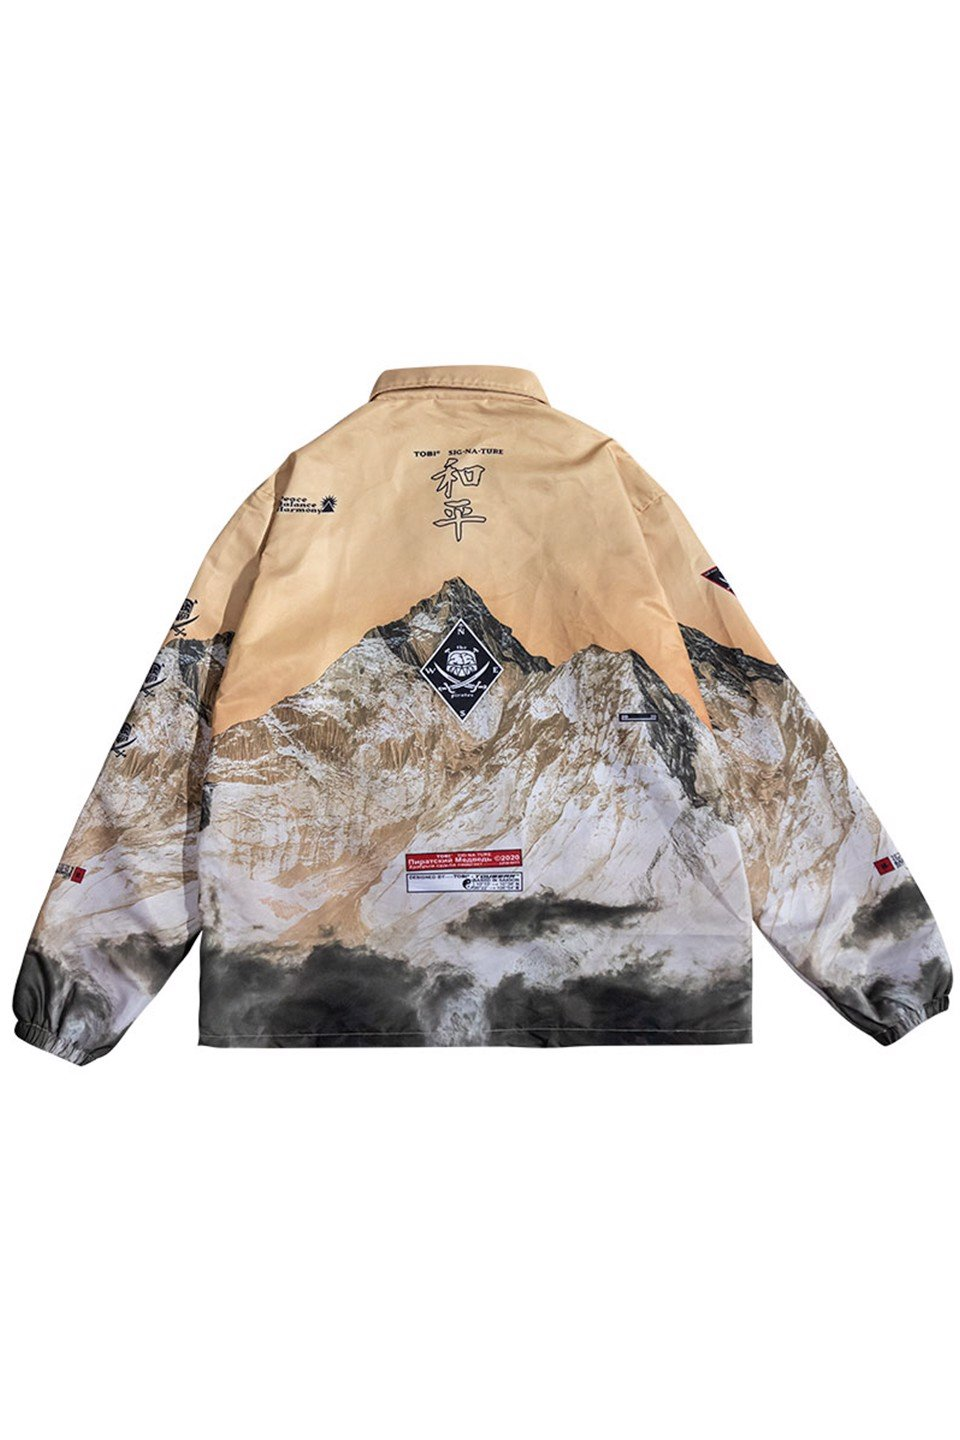 Peace Pirate Jacket - Beige